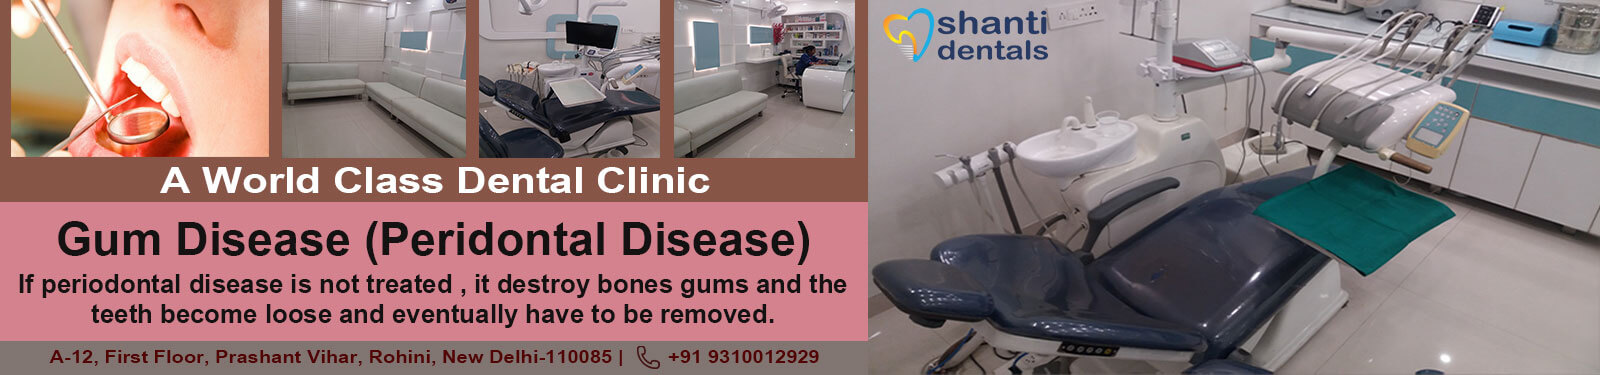 Gum Disease Peridontal Disease Treatment in Rohini Delhi by Shanti Dentals